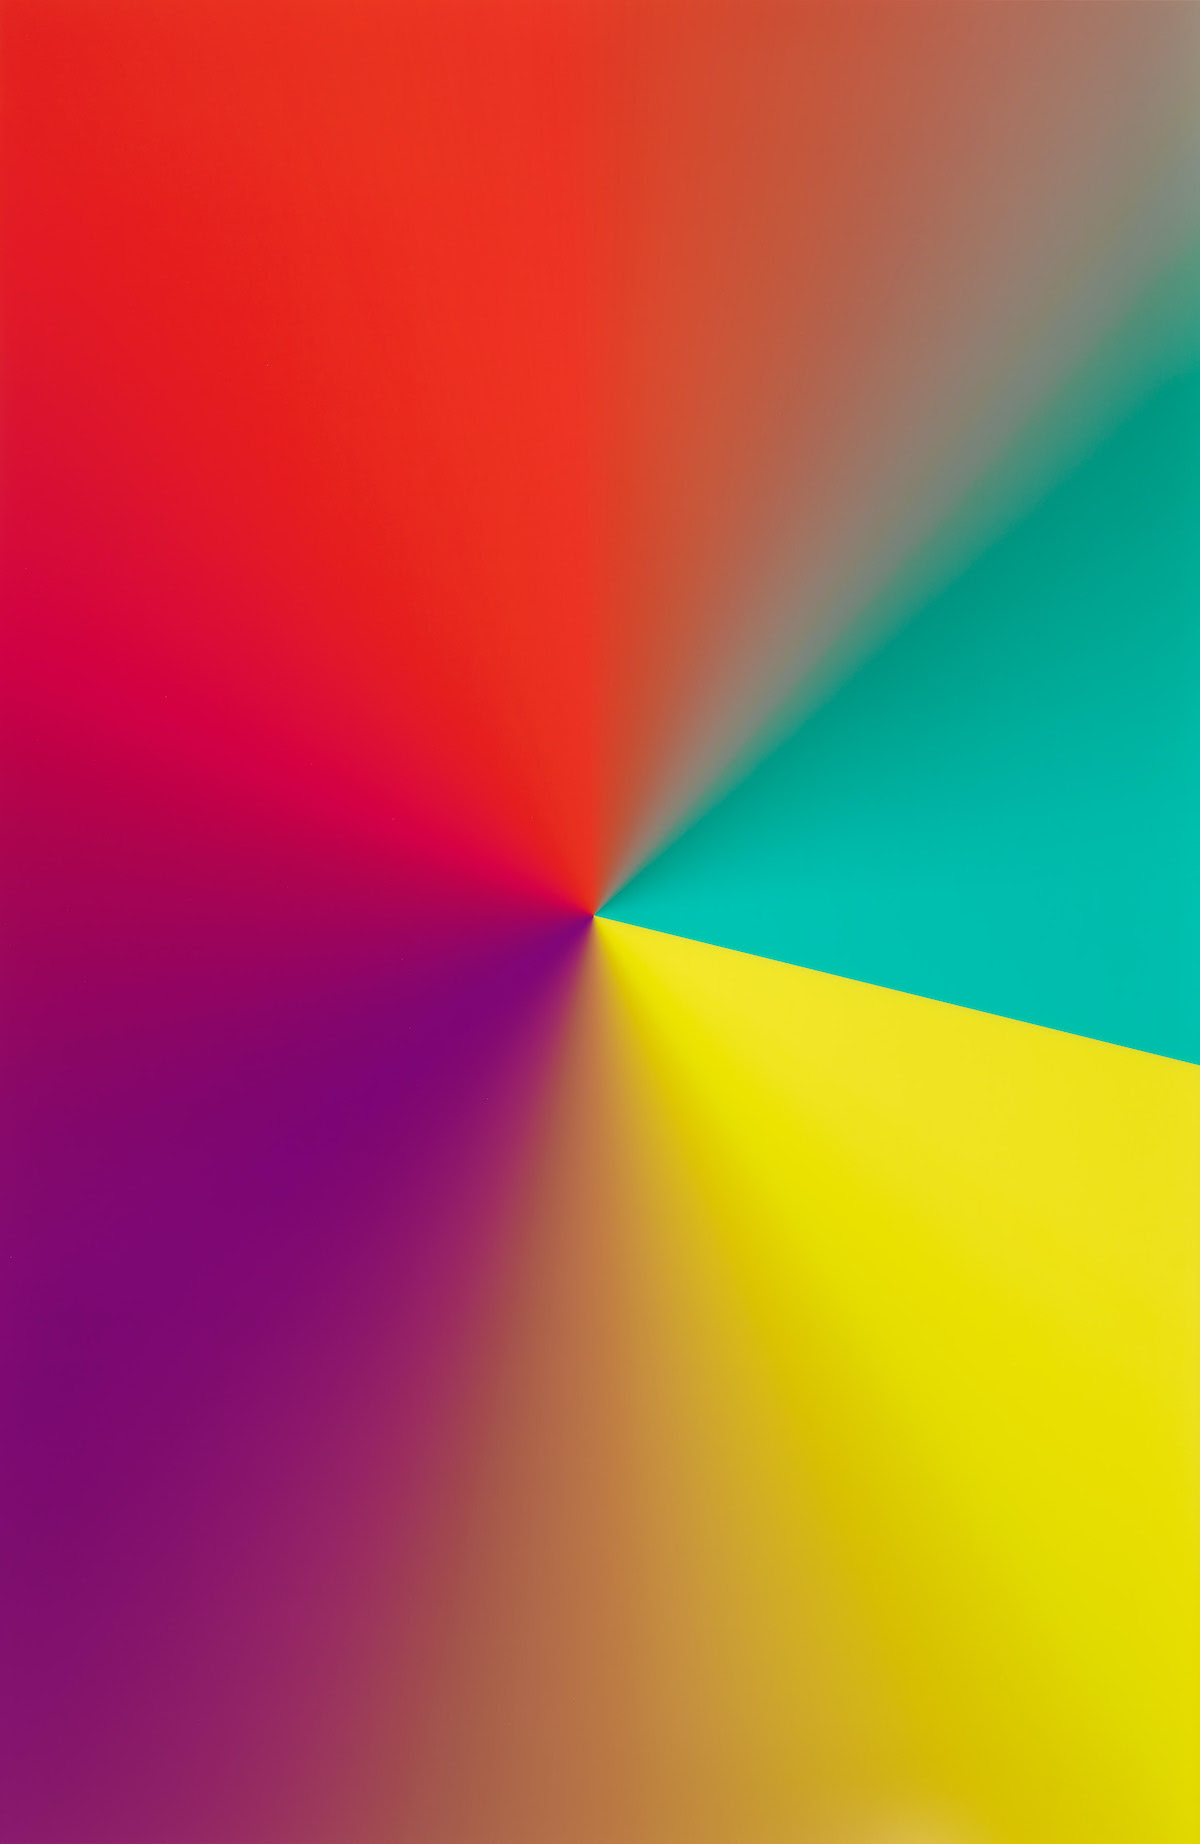 "Cory Arcangel (b. 1978), Photoshop CS: 110 by 72 inches, 300 DPI, RGB, square pixels, default gradient ""Yellow, Violet, Red, Teal"", mousedown y=16450 x=10750, mouse up y=18850 x=20600, 2009."